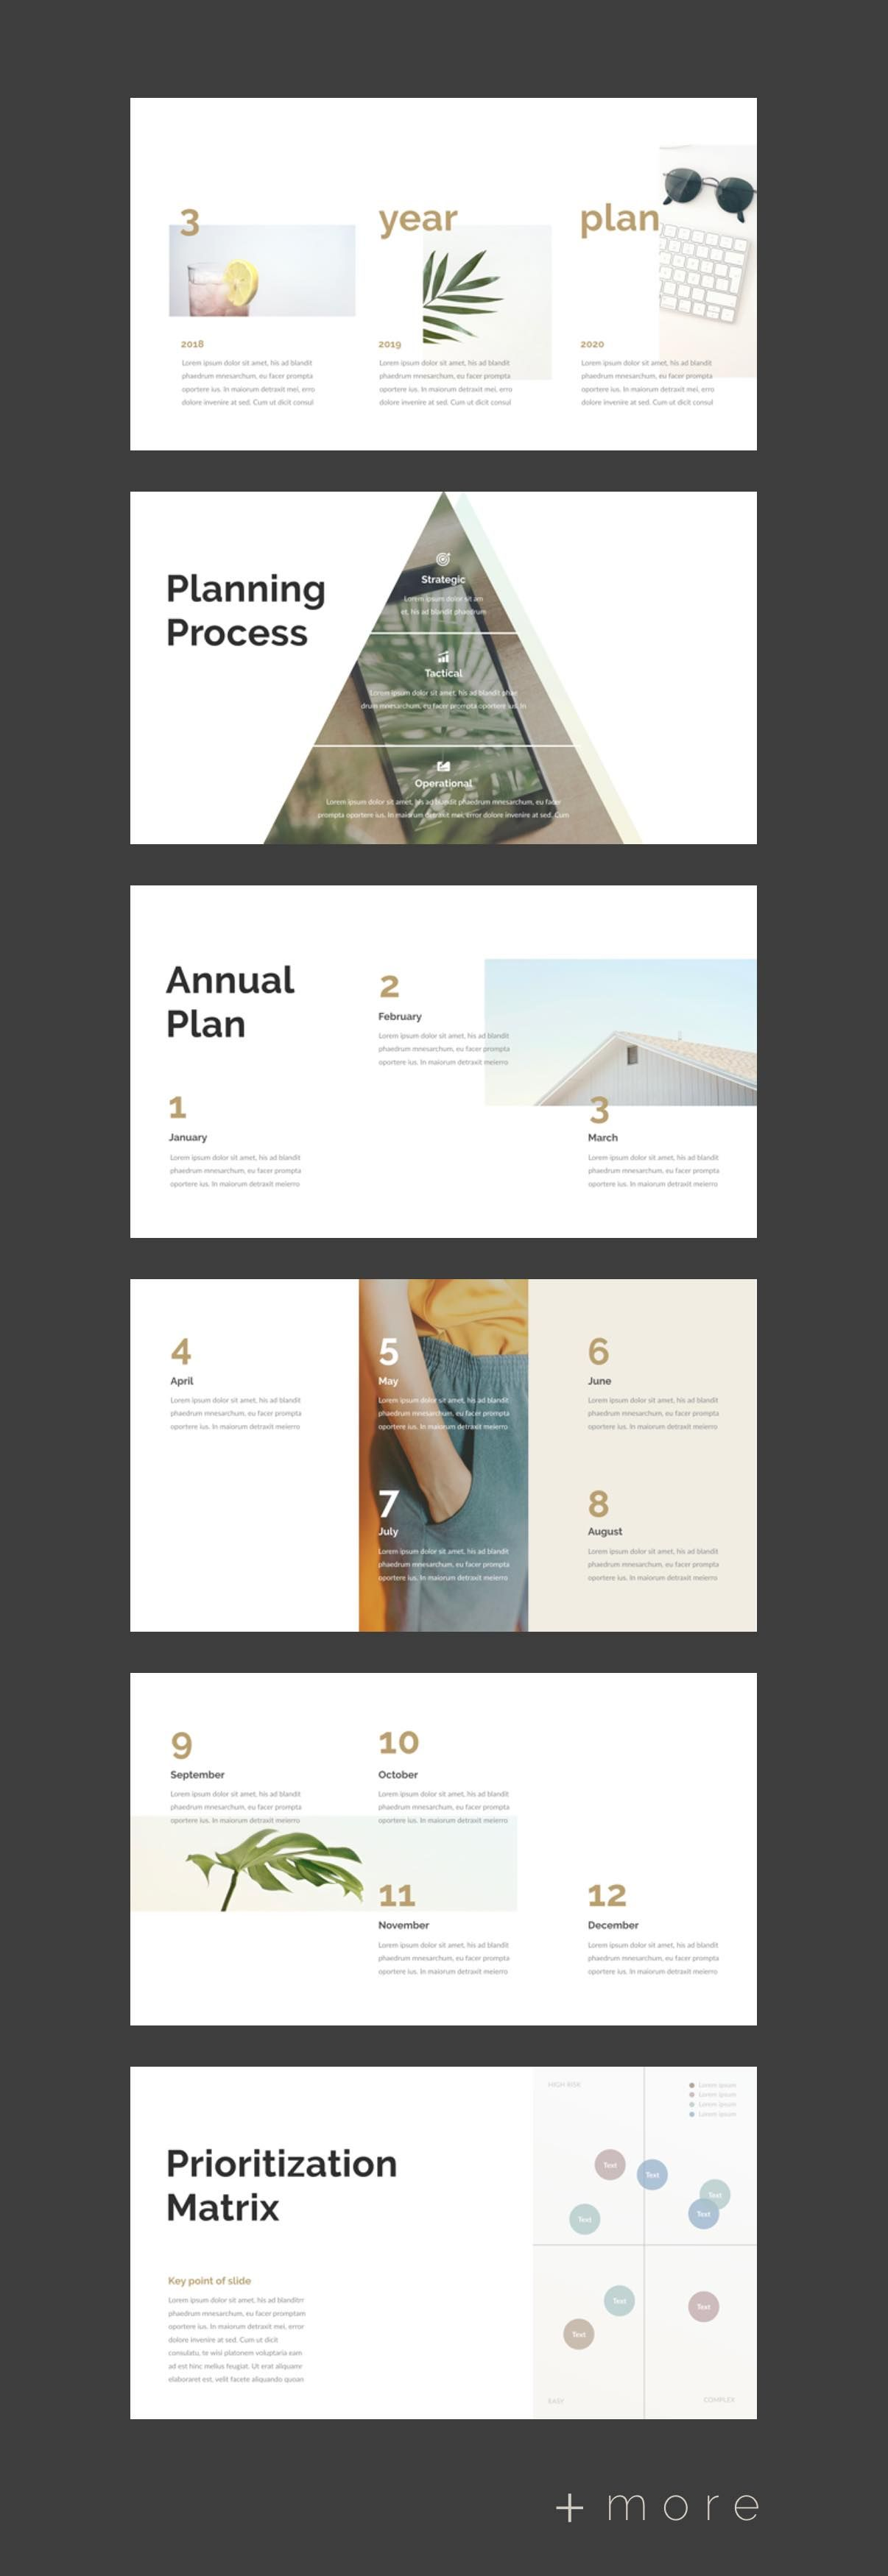 planner presentation template 2018 business planning ppt plan